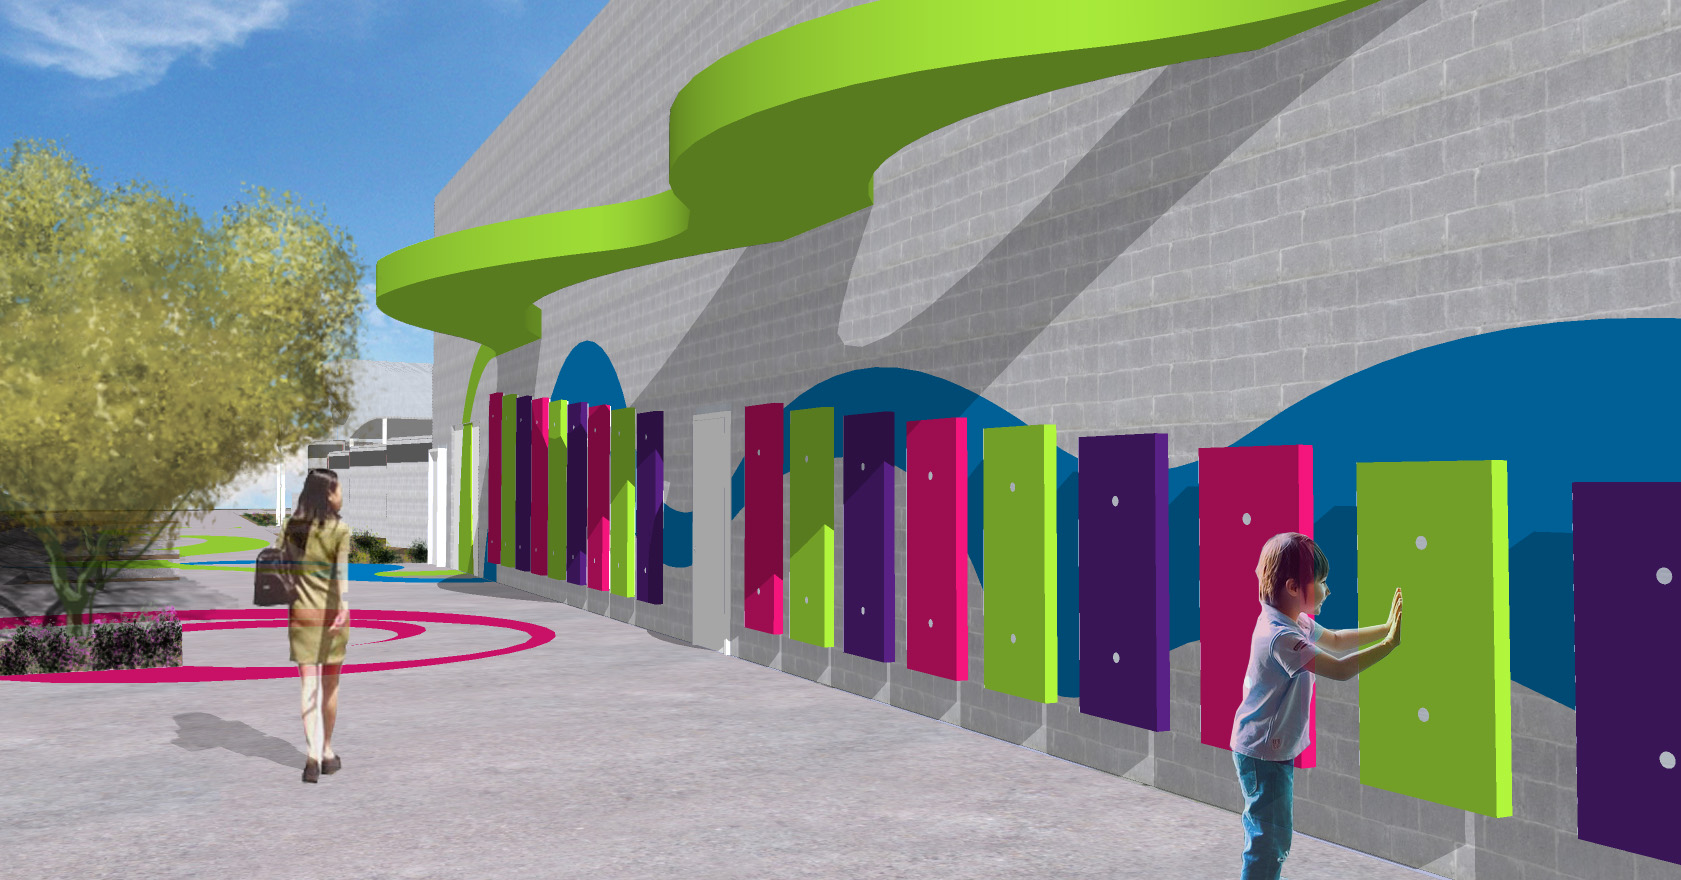 Design School Competition Yields Vibrant New Design For